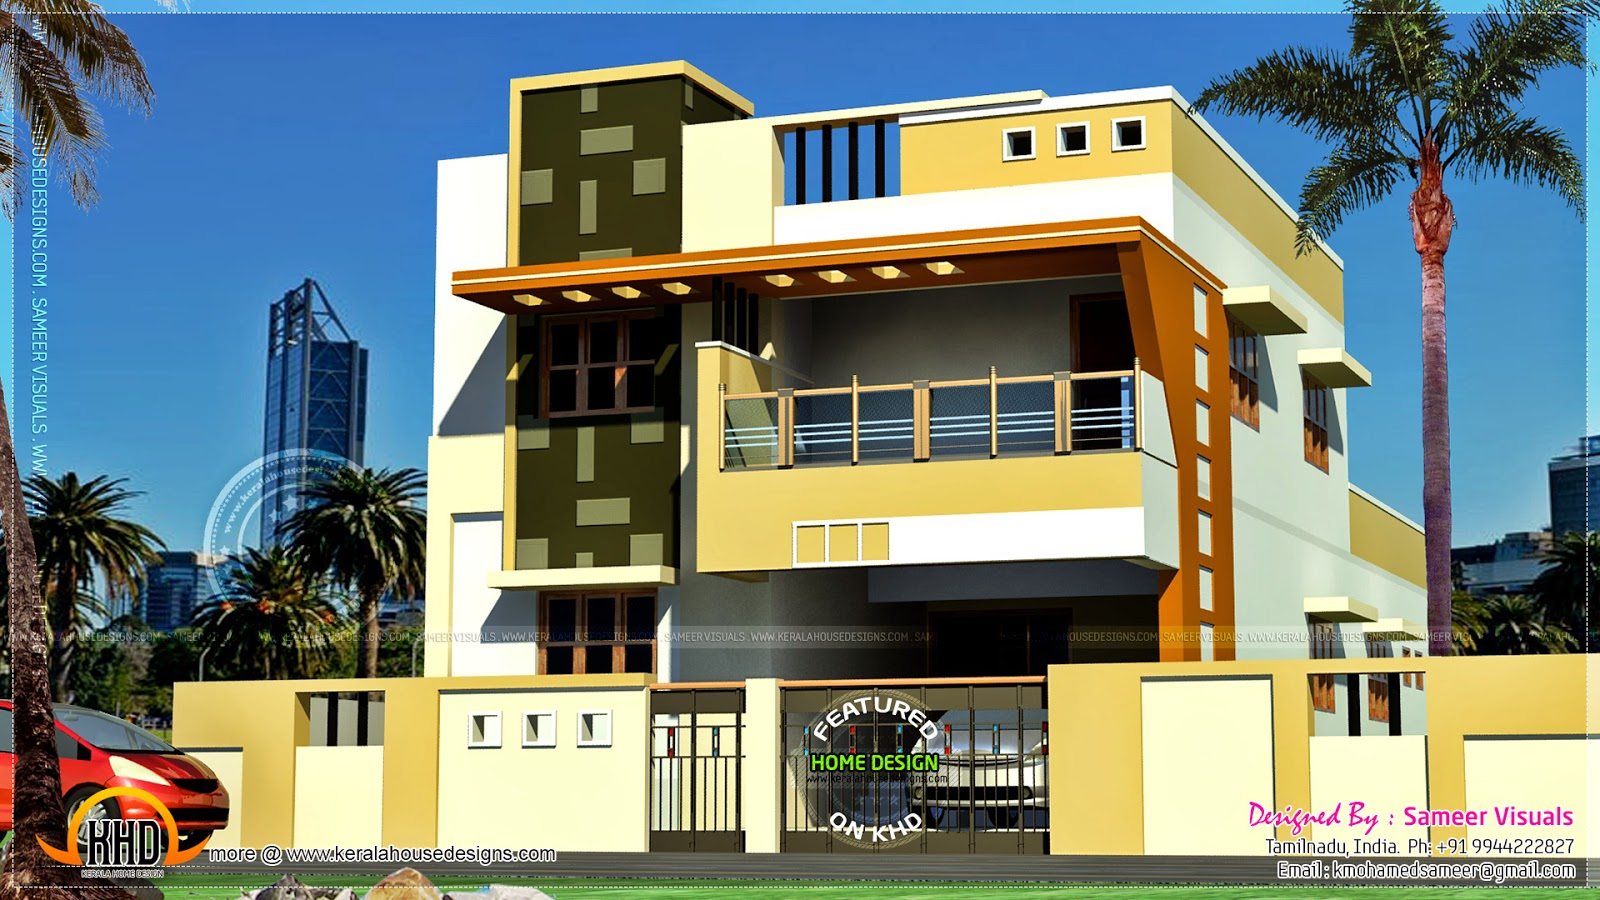 Modern south indian house design kerala home design and Building plans indian homes